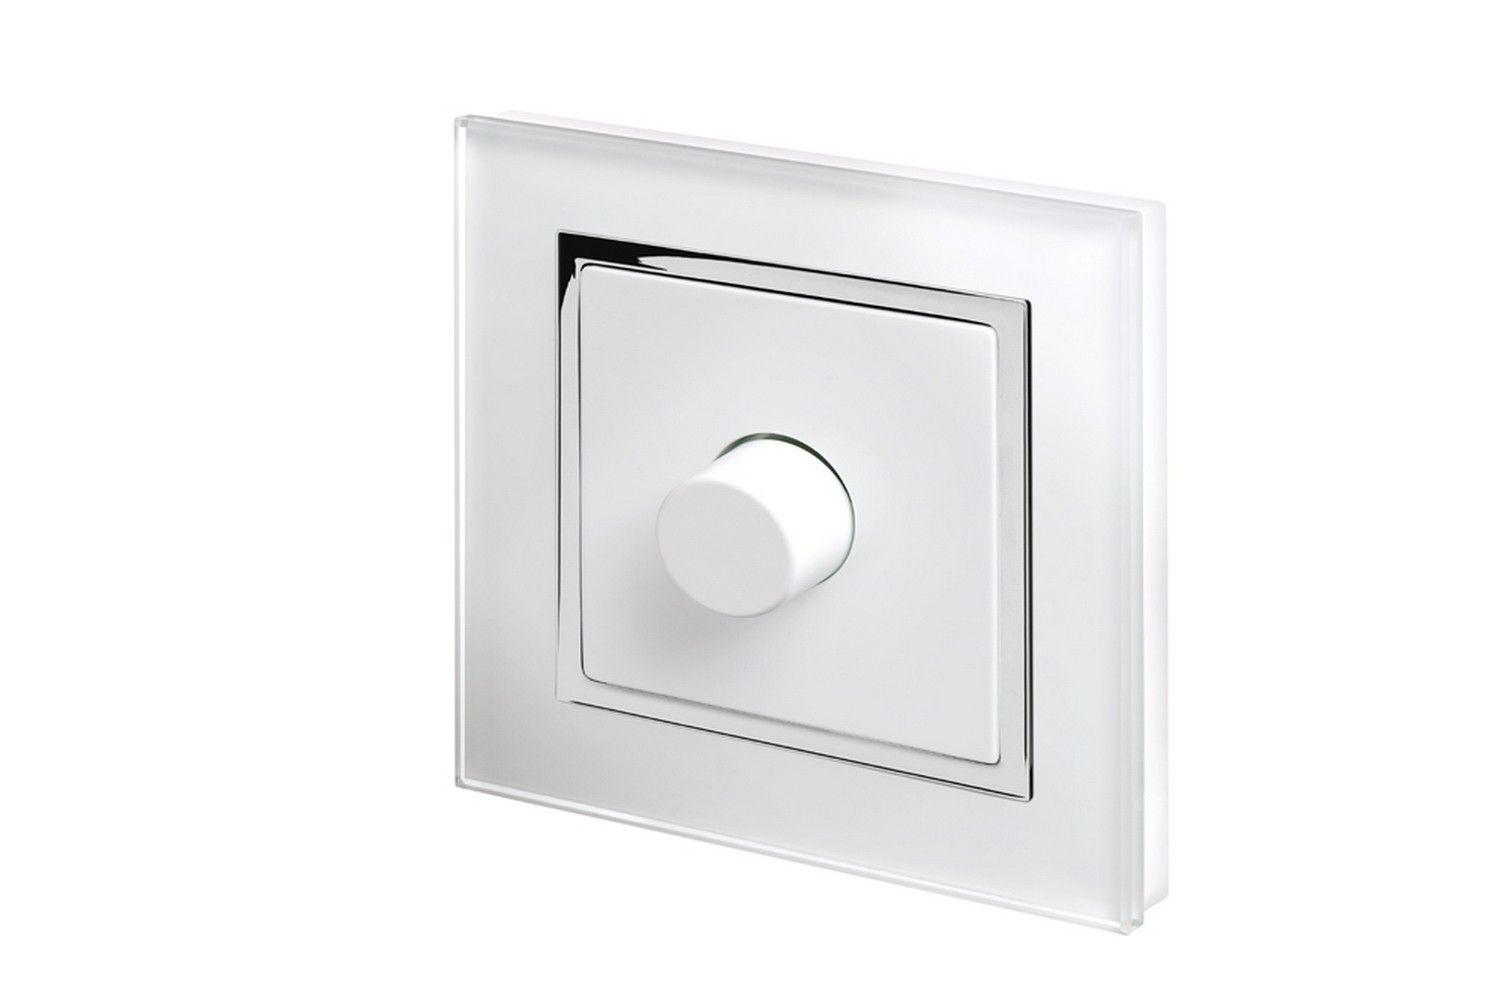 3 Light Switch Dimmer